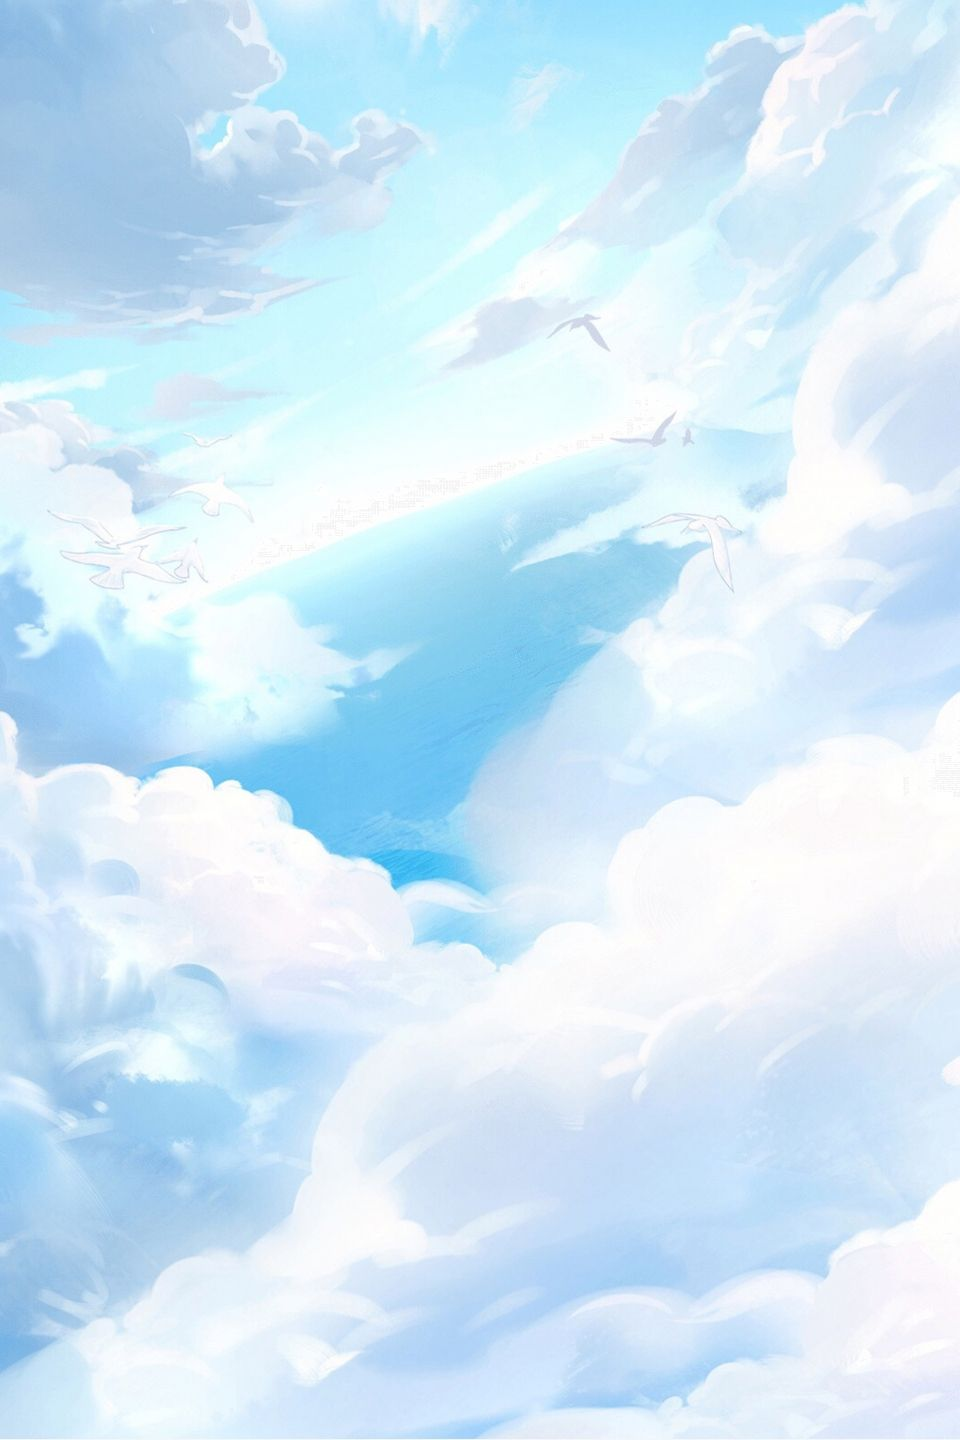 Cartoon Blue Sky White Clouds Download Sky Anime Blue Sky Wallpaper Blue Sky Background Aesthetic clouds white wallpaper